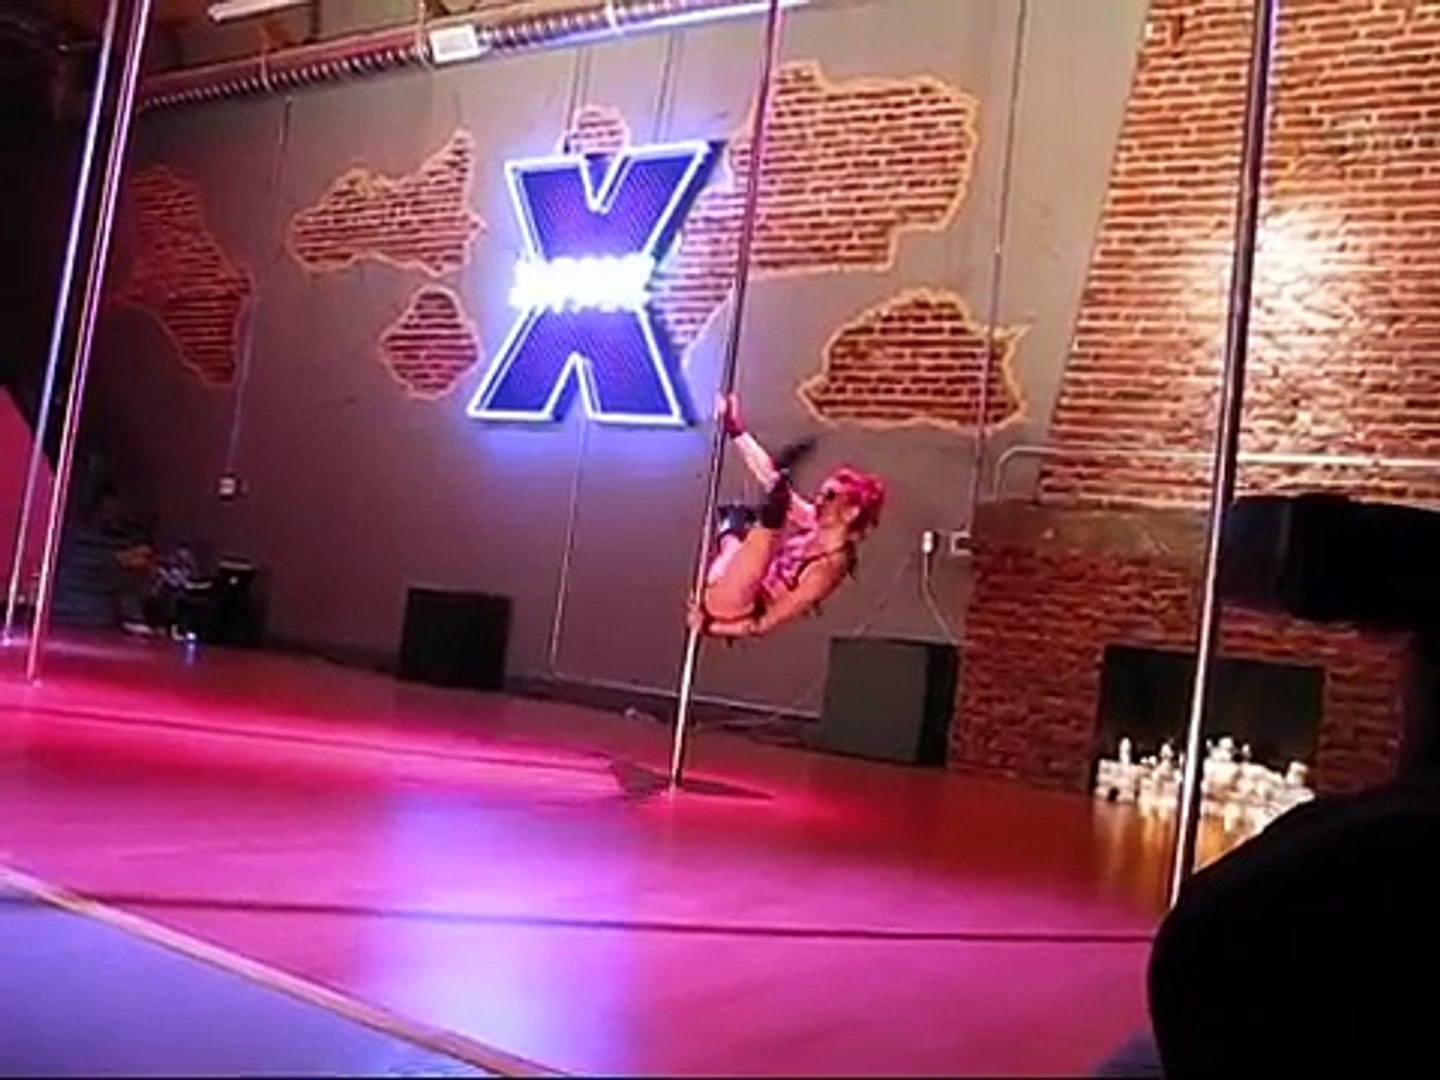 LA Pole Show - Karol Helms - Jan 23 2010